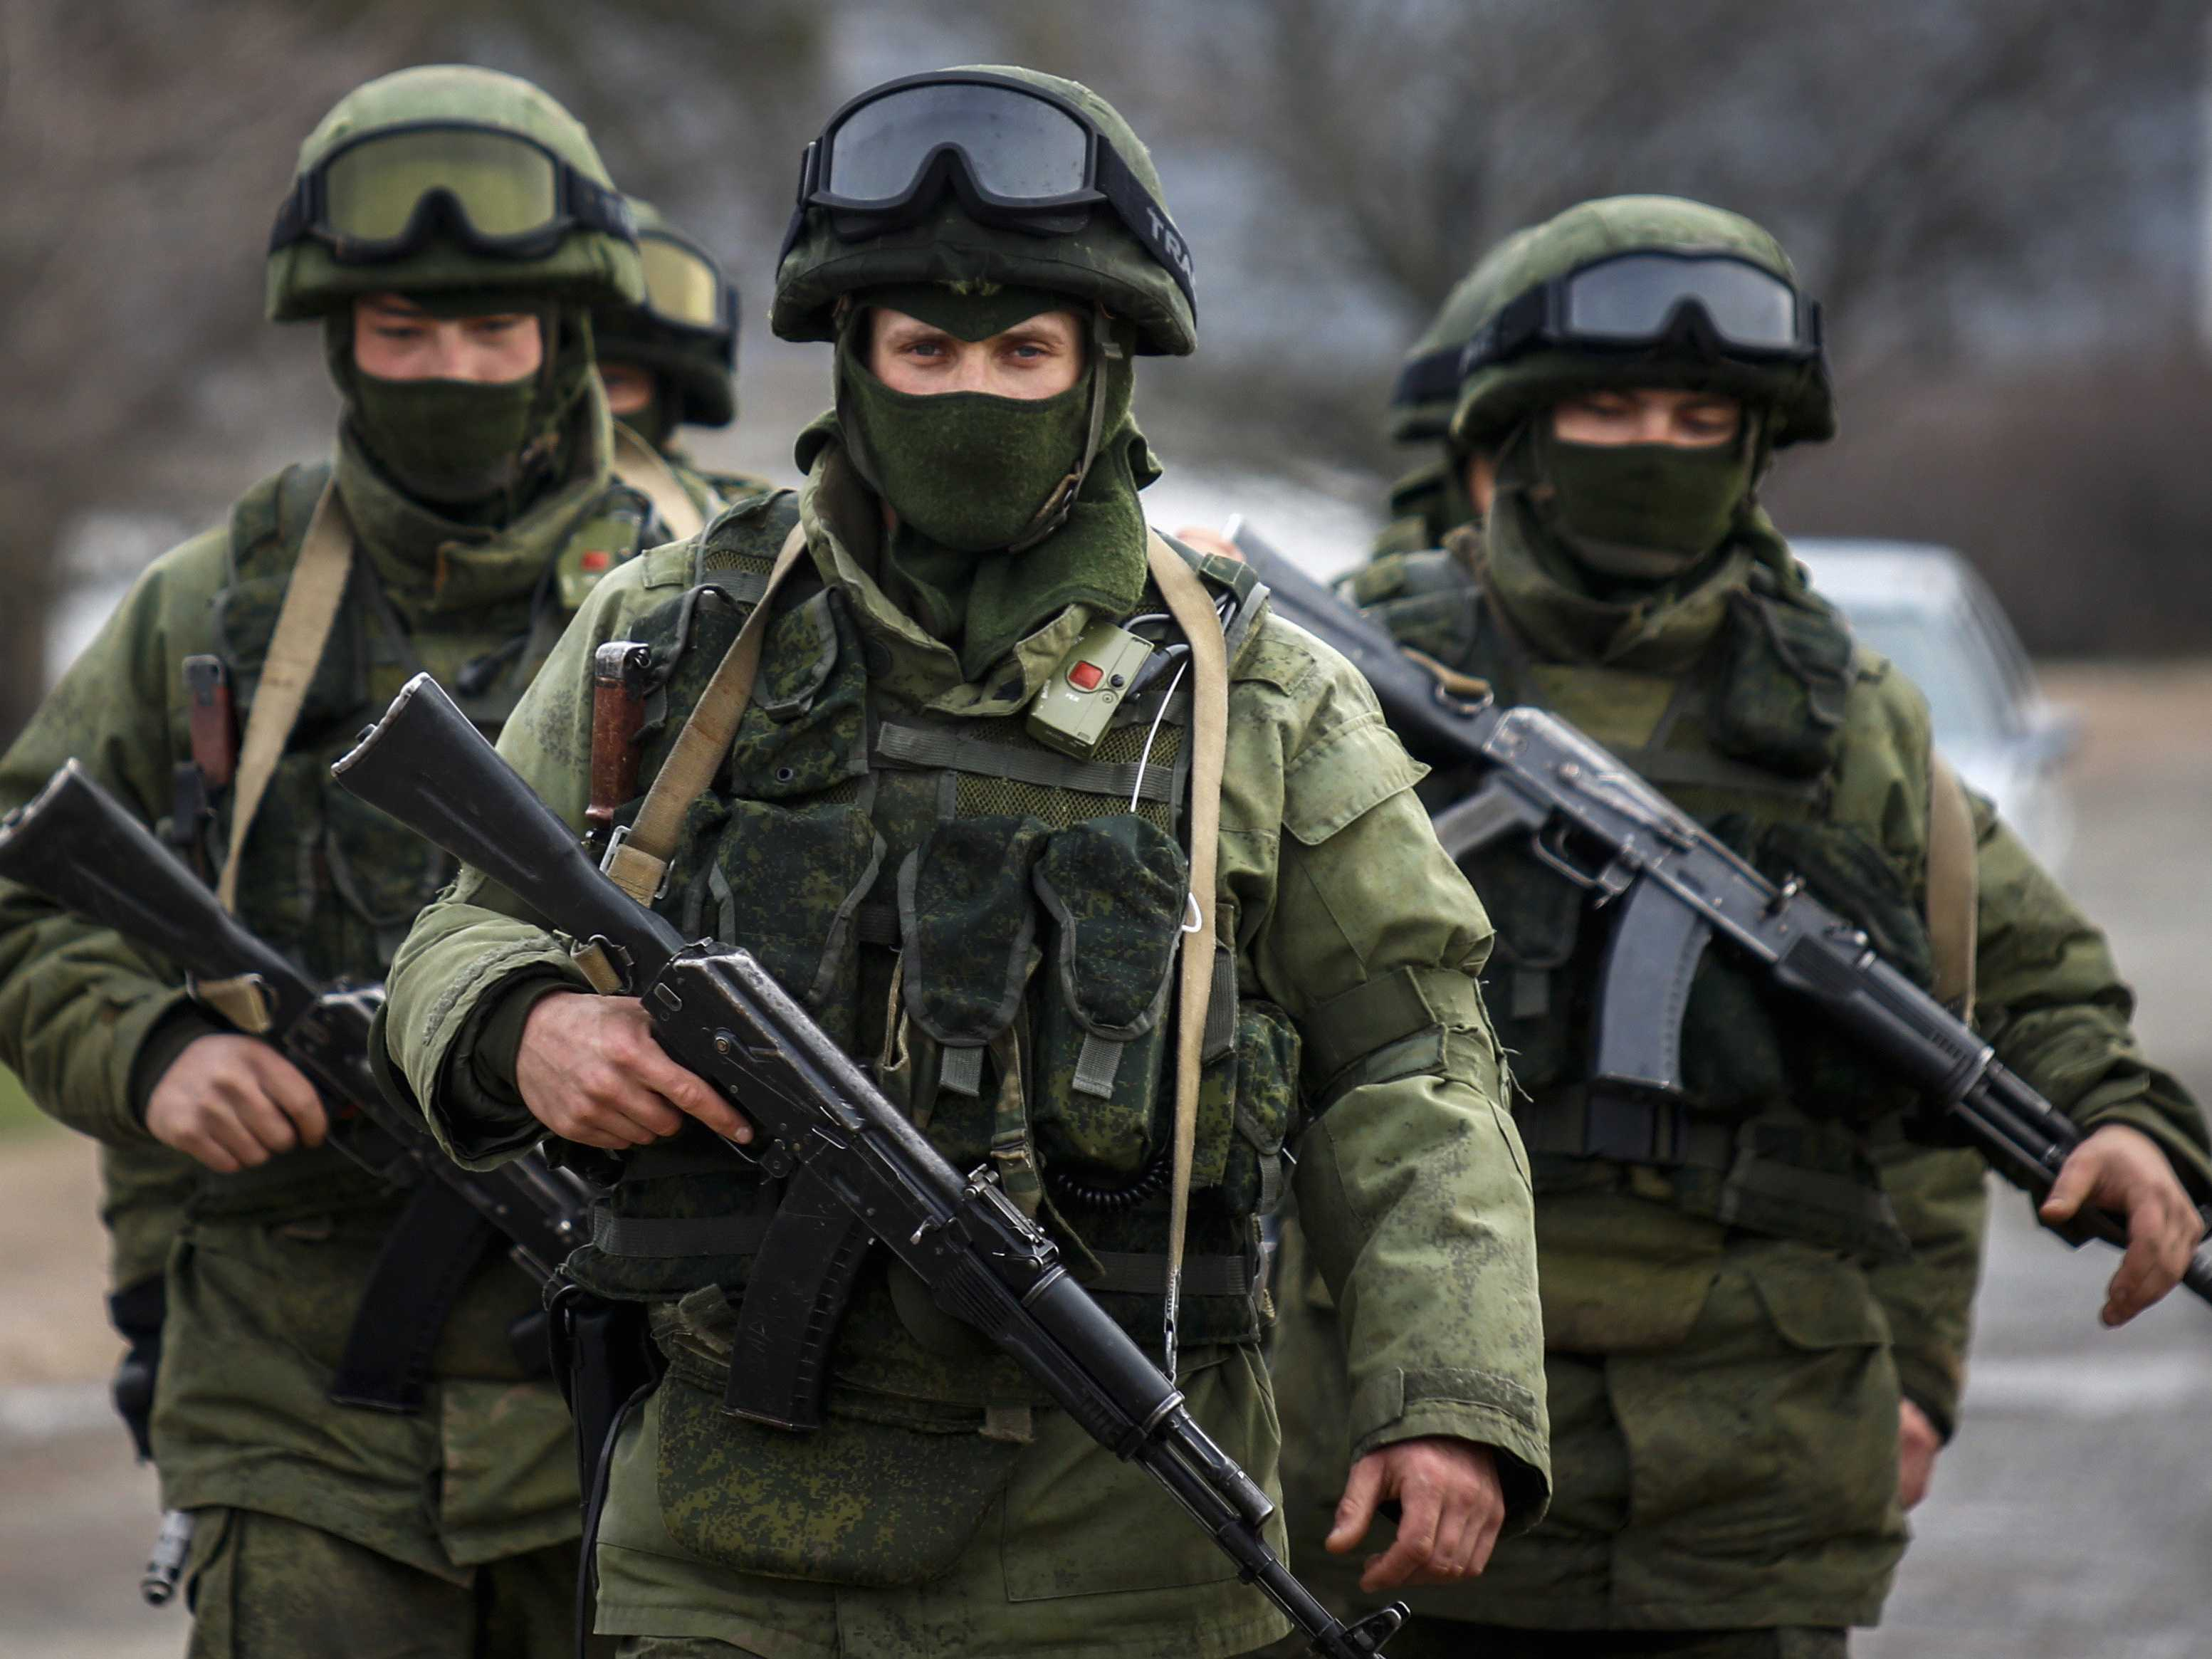 Top 10 Strongest Armies In 2015 - Armed Force Of Russian Federation, Russia